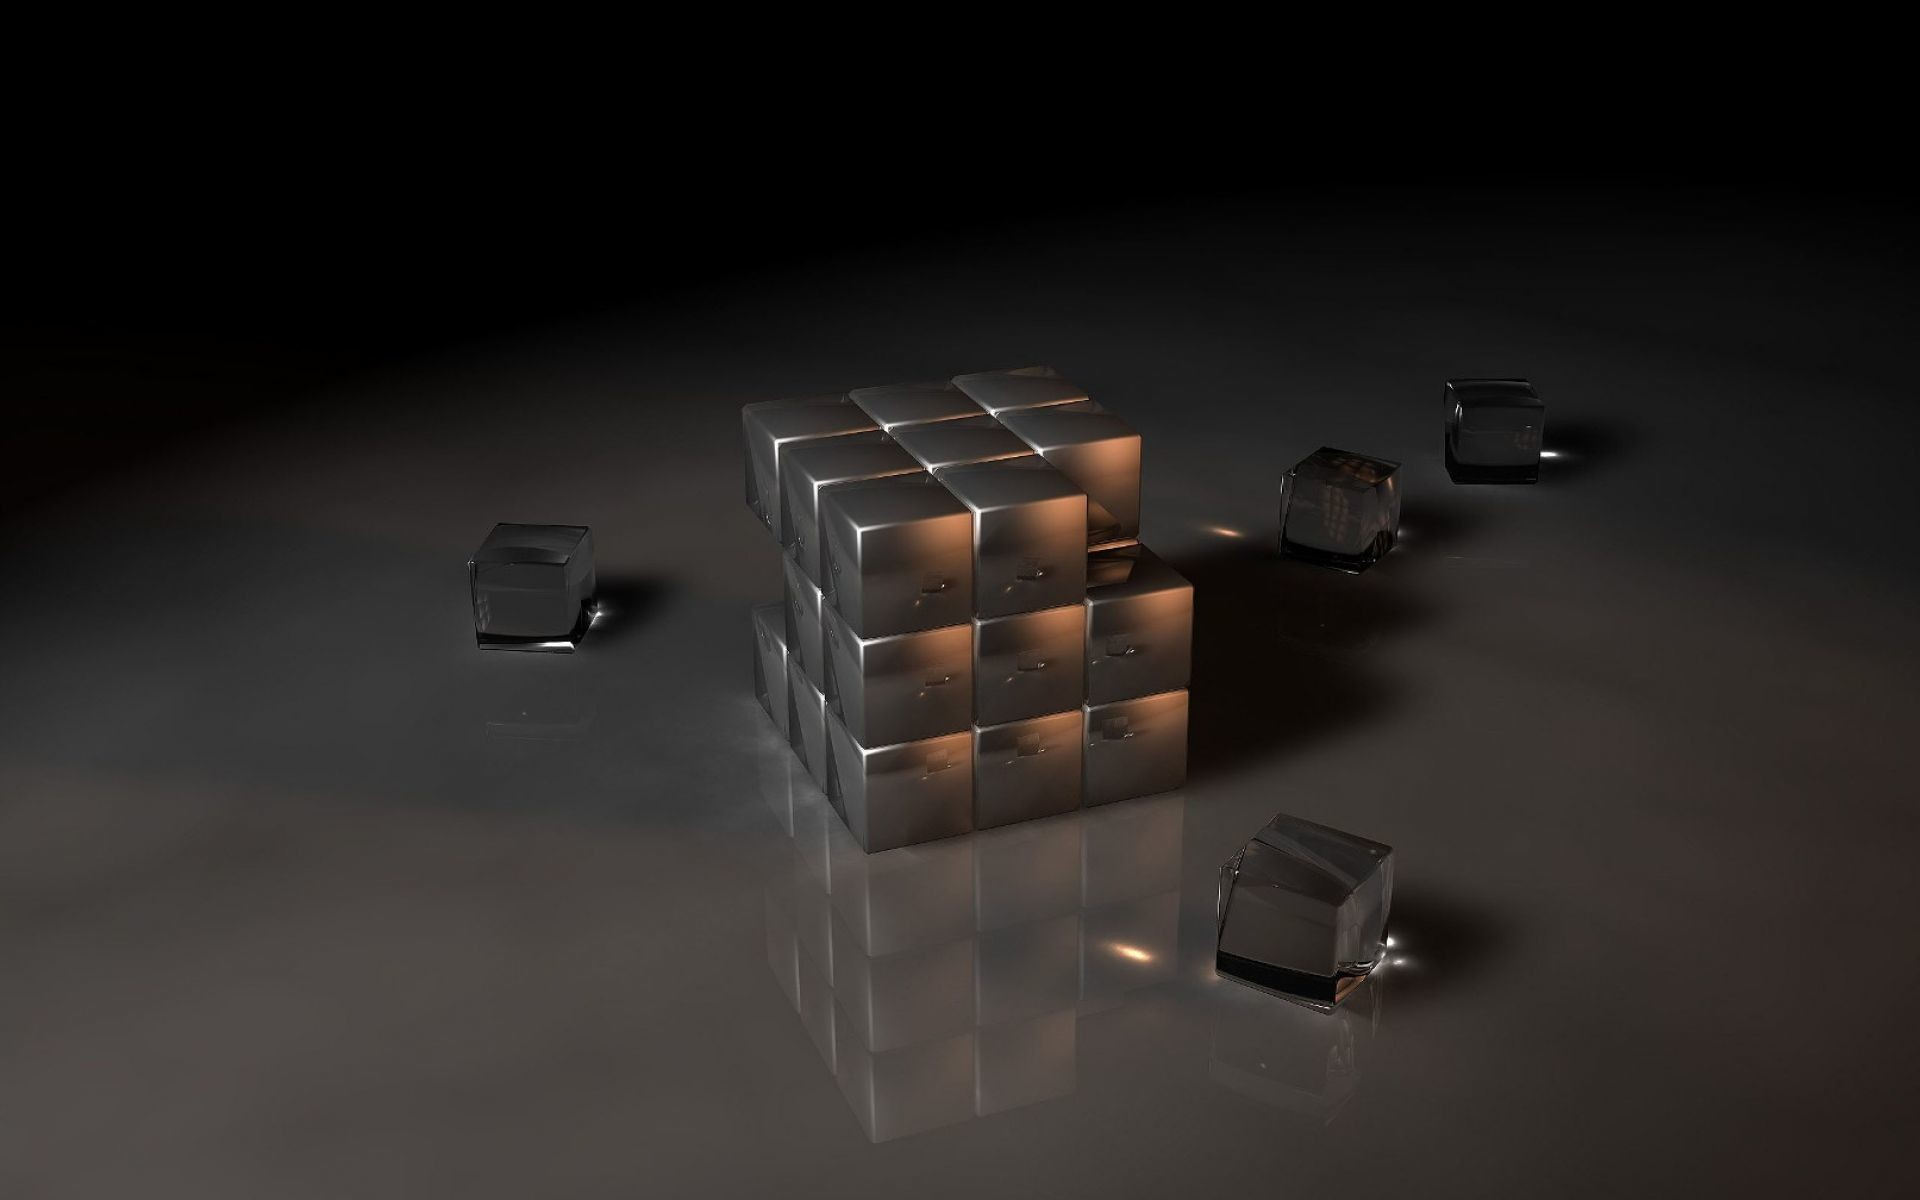 3D Ice Cube Wallpaper | HD 3D and Abstract Wallpaper Free Download …